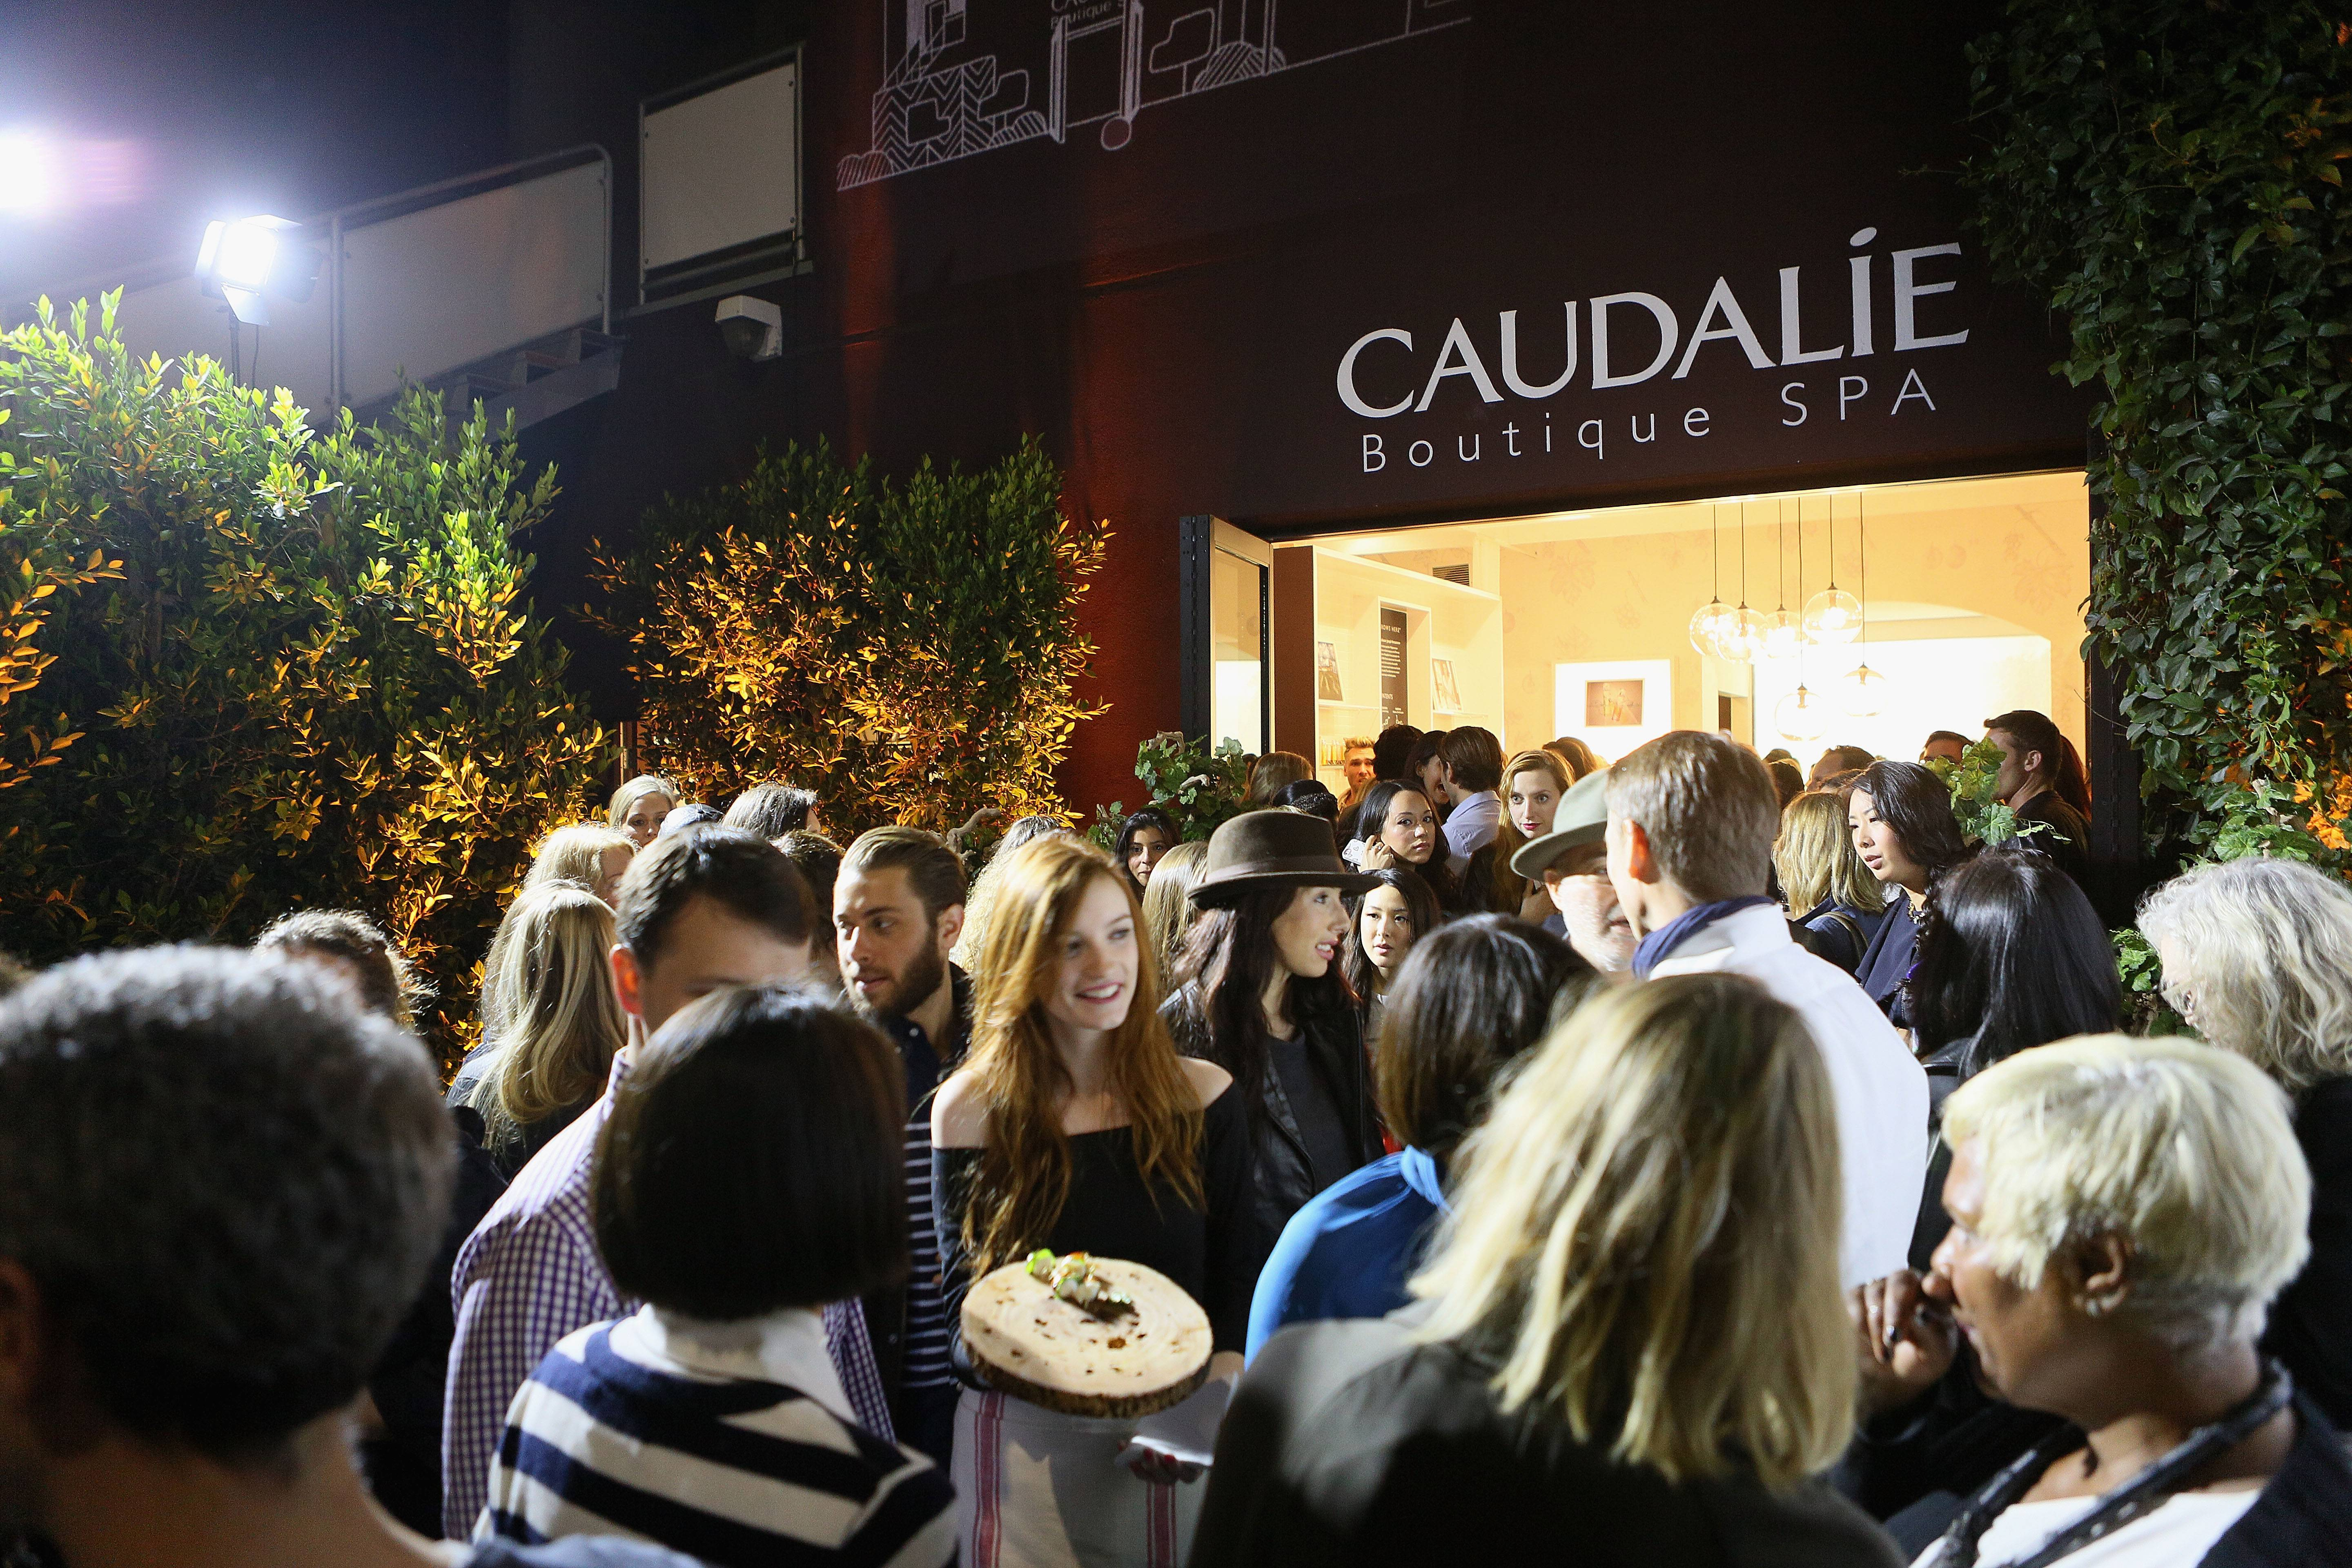 Caudalie Boutique Spa Grand Opening